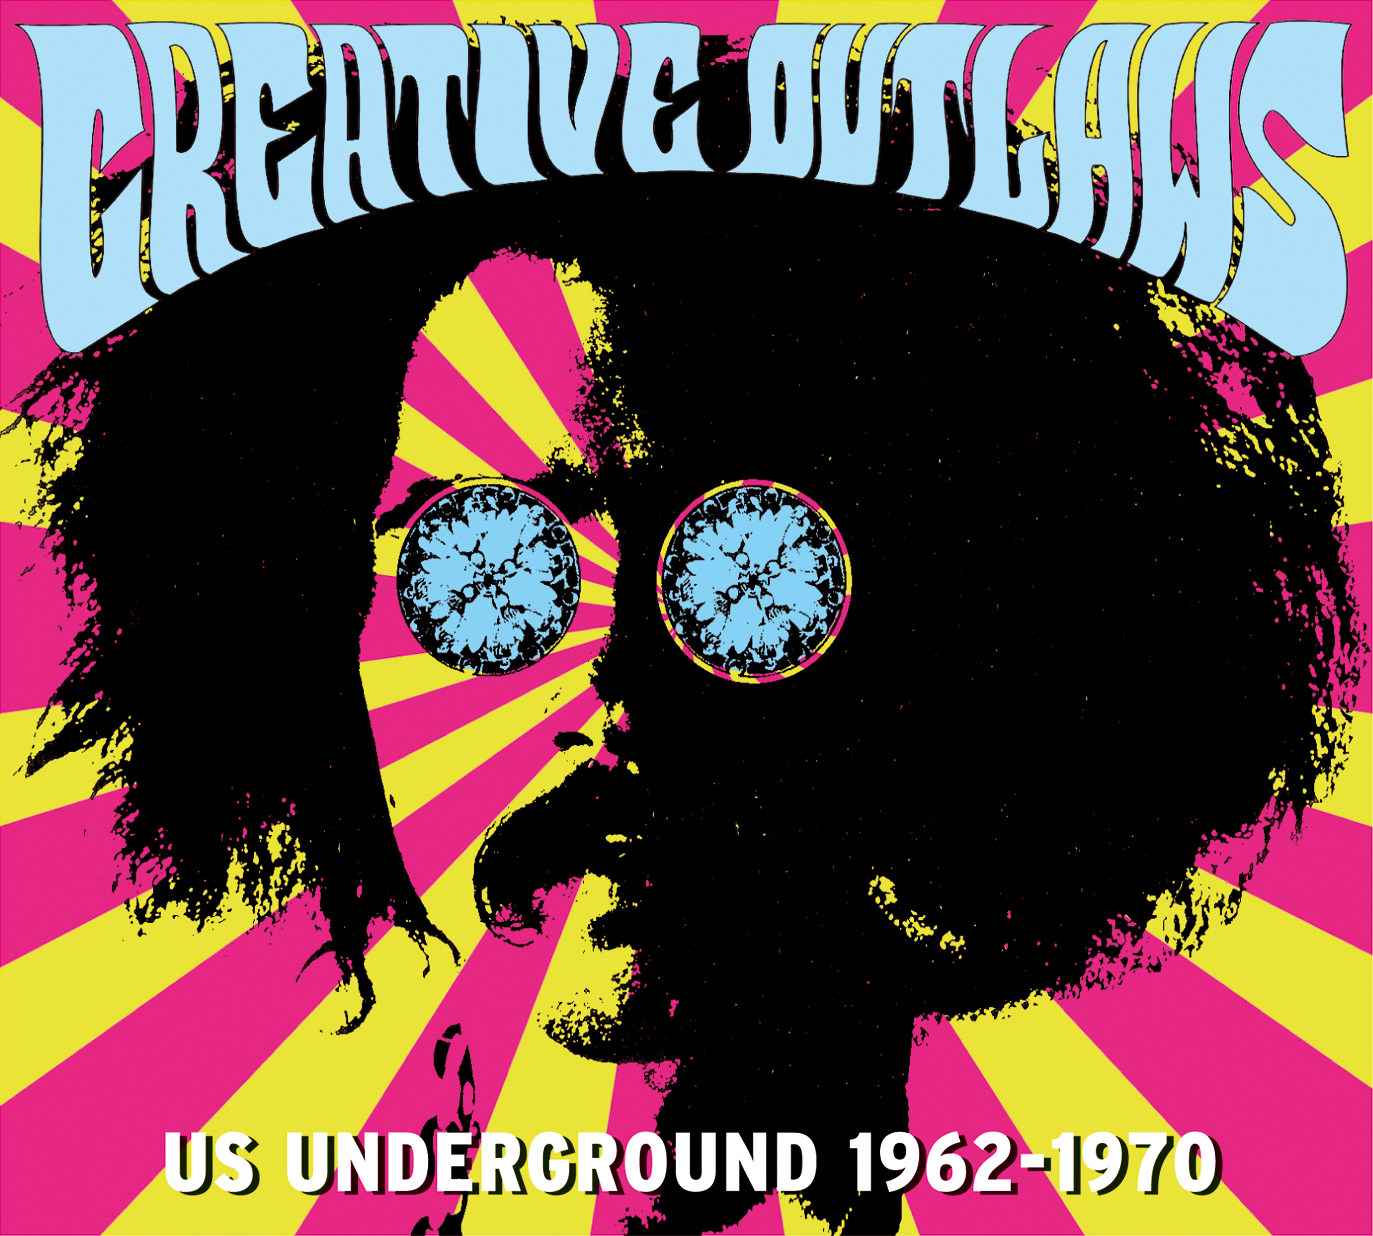 Creative Outlaws - US Underground 1962-1970